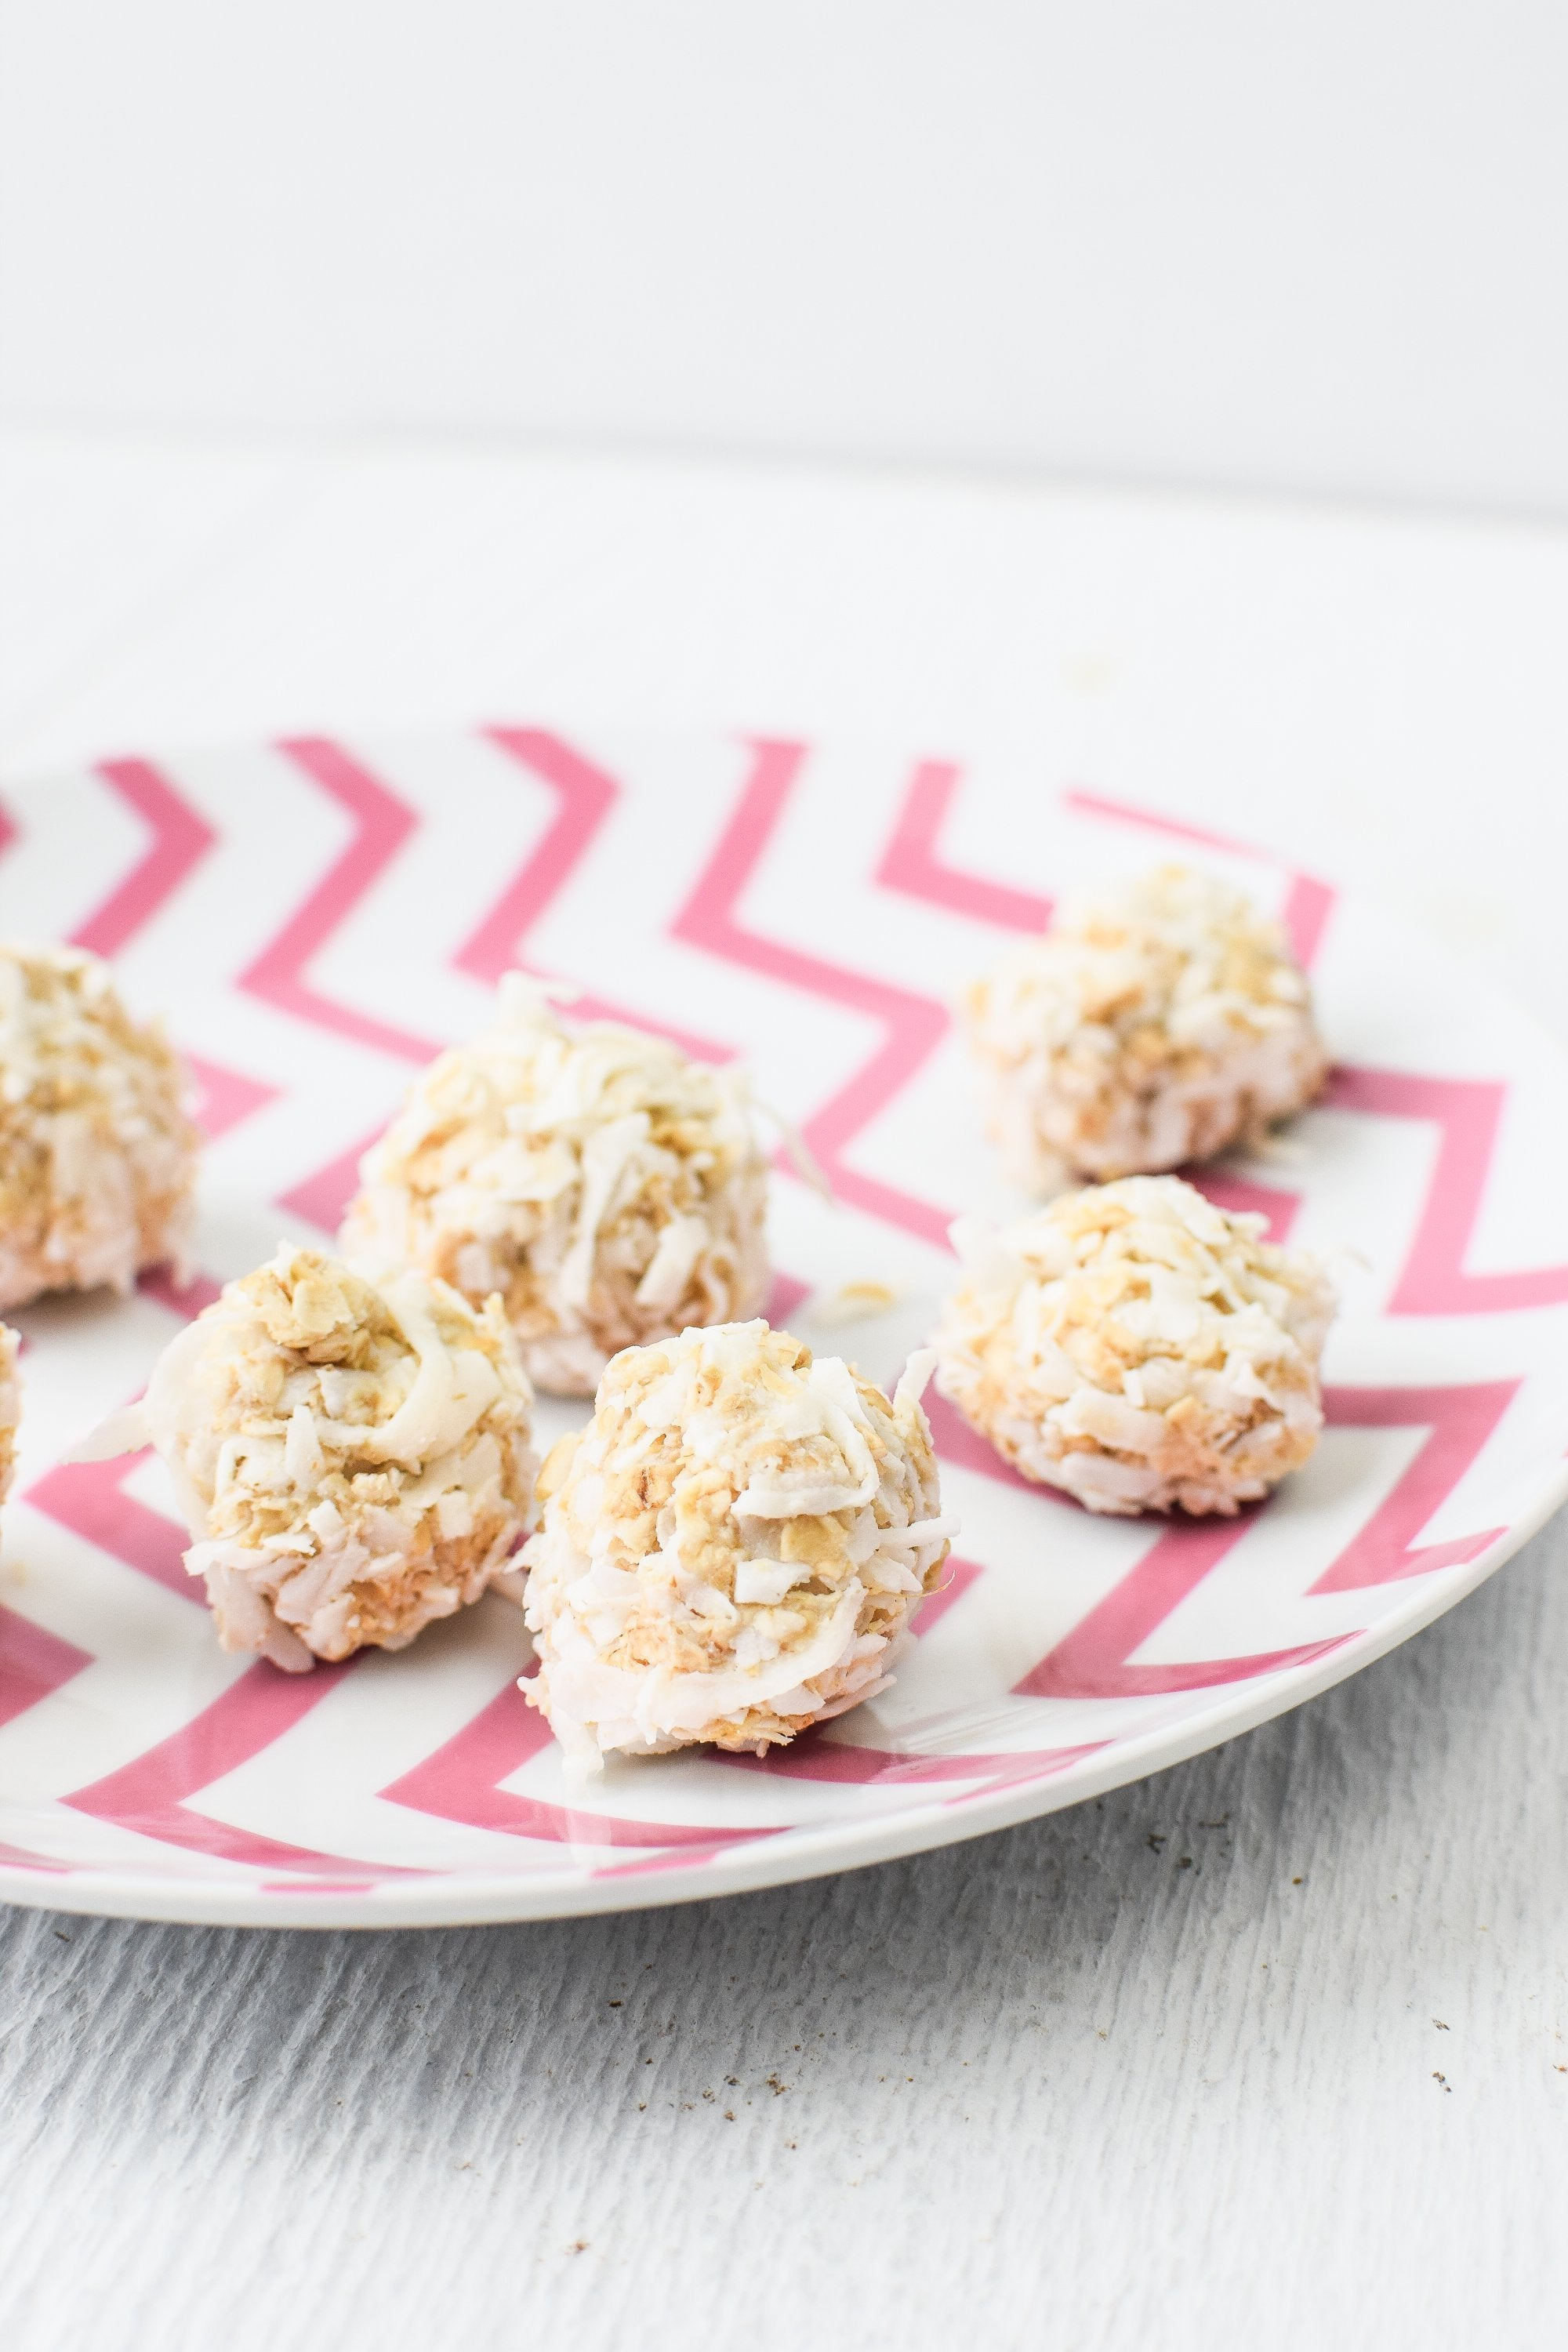 Easy Homemade Treats for Dogs: Coconut Oatmeal Bites